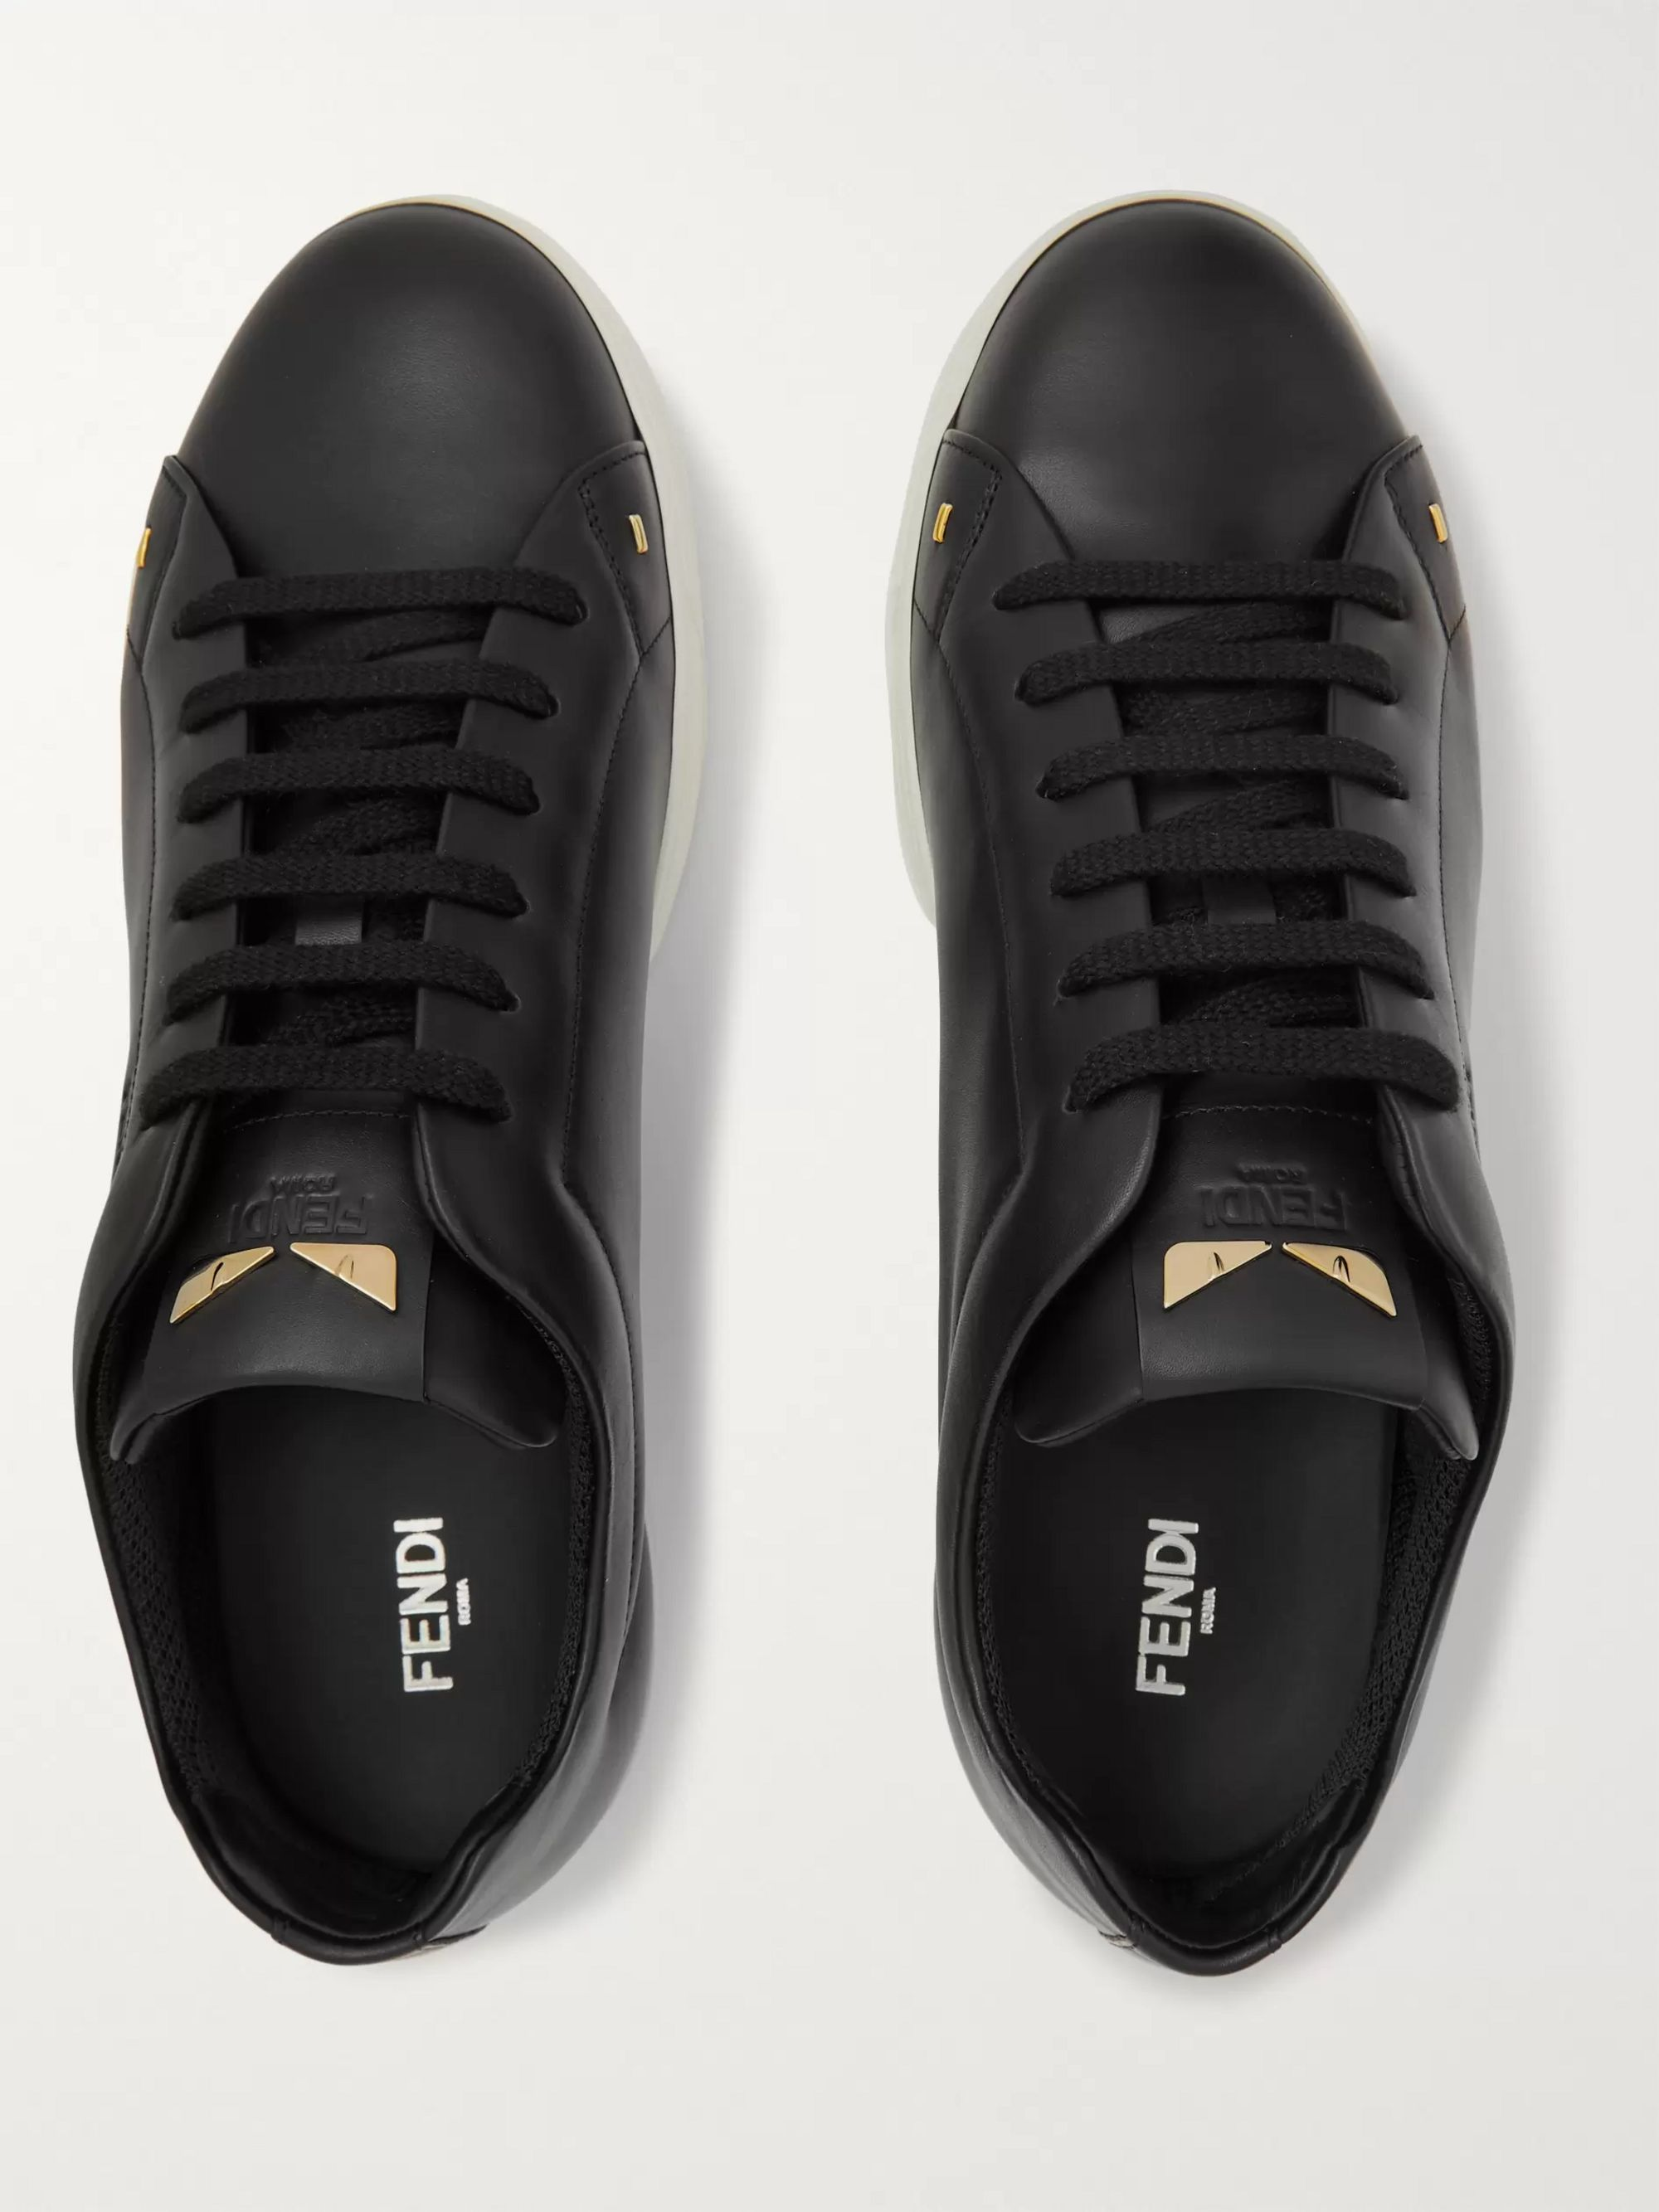 Fendi I See You Embellished Leather Sneakers